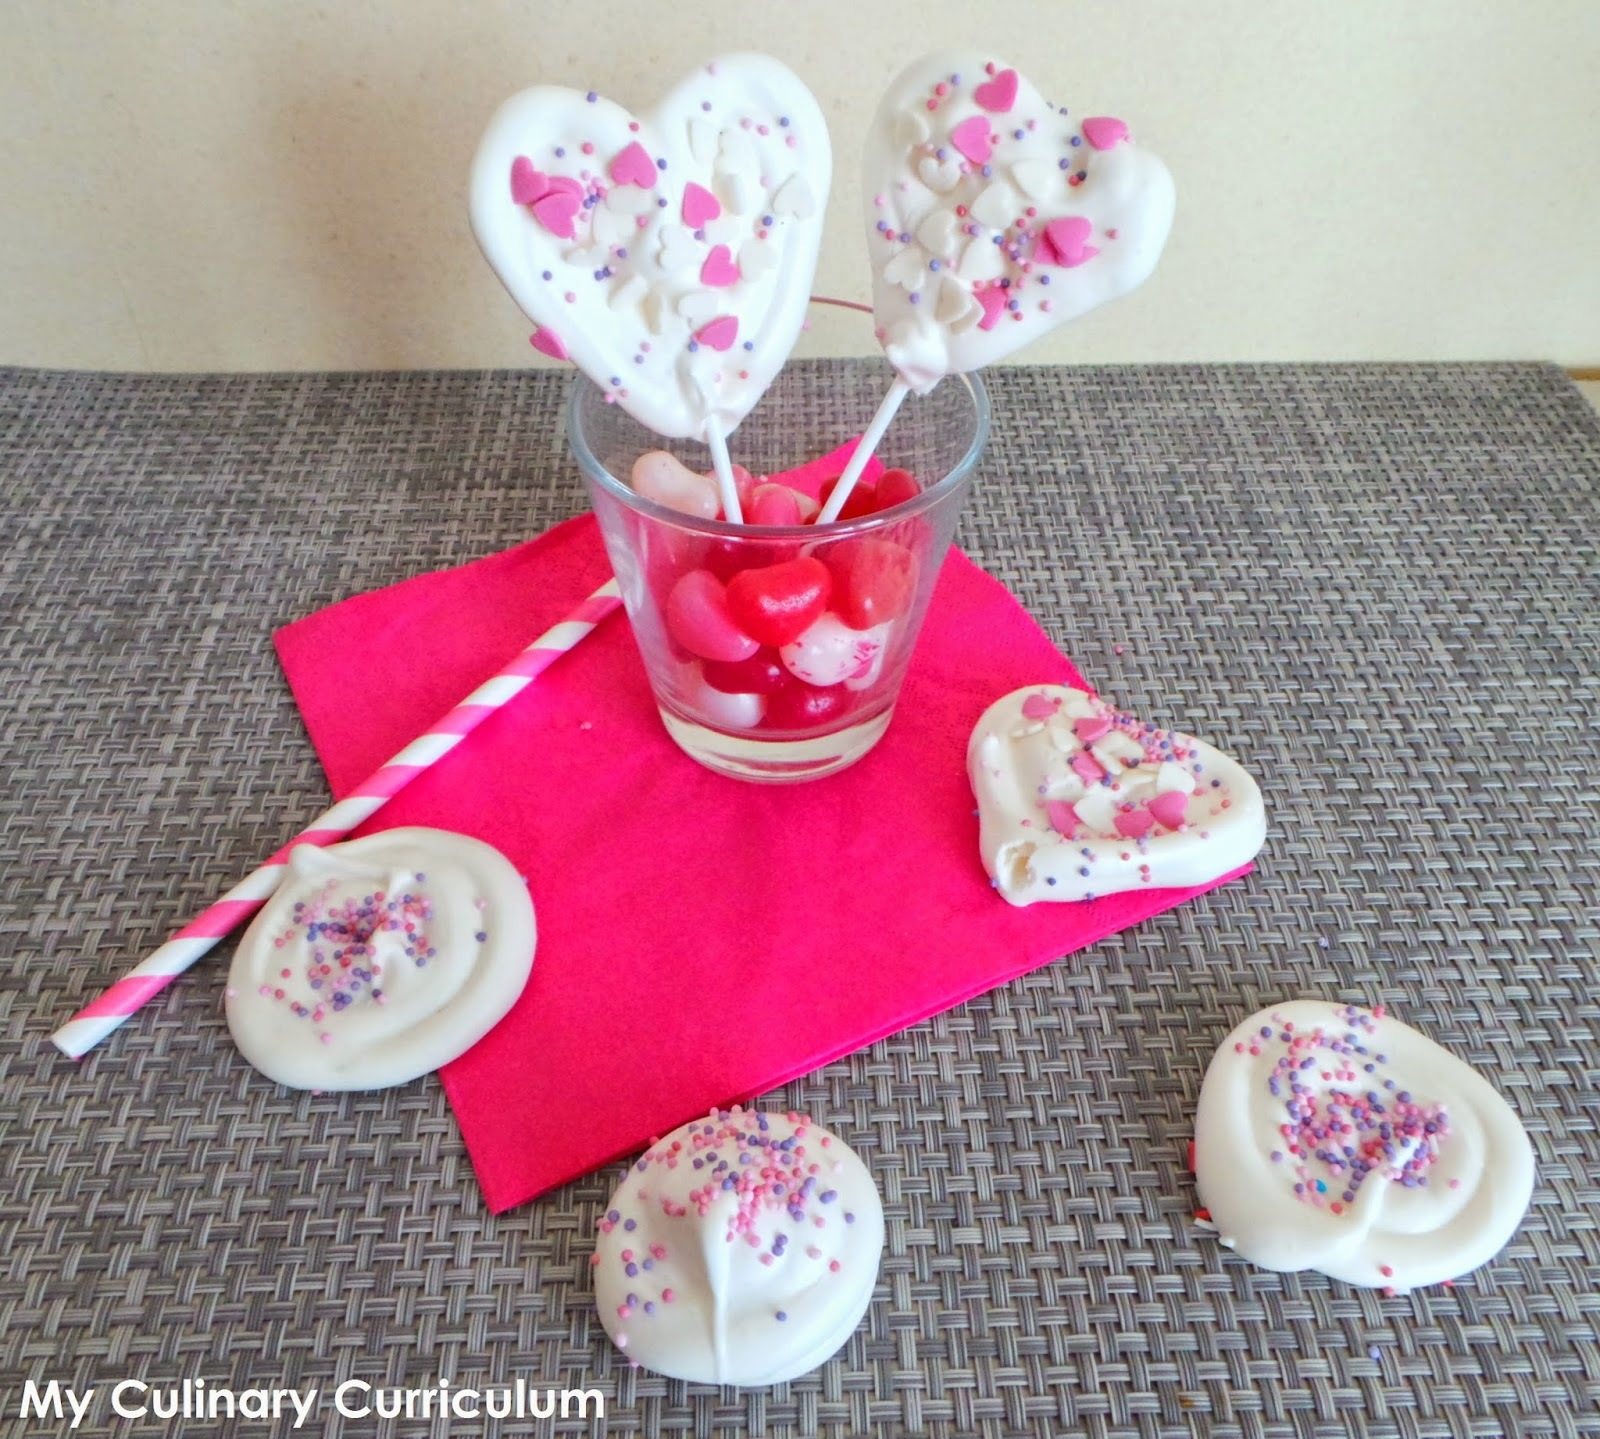 Sucettes de mernigues coeur (Heart lollipops meringues)